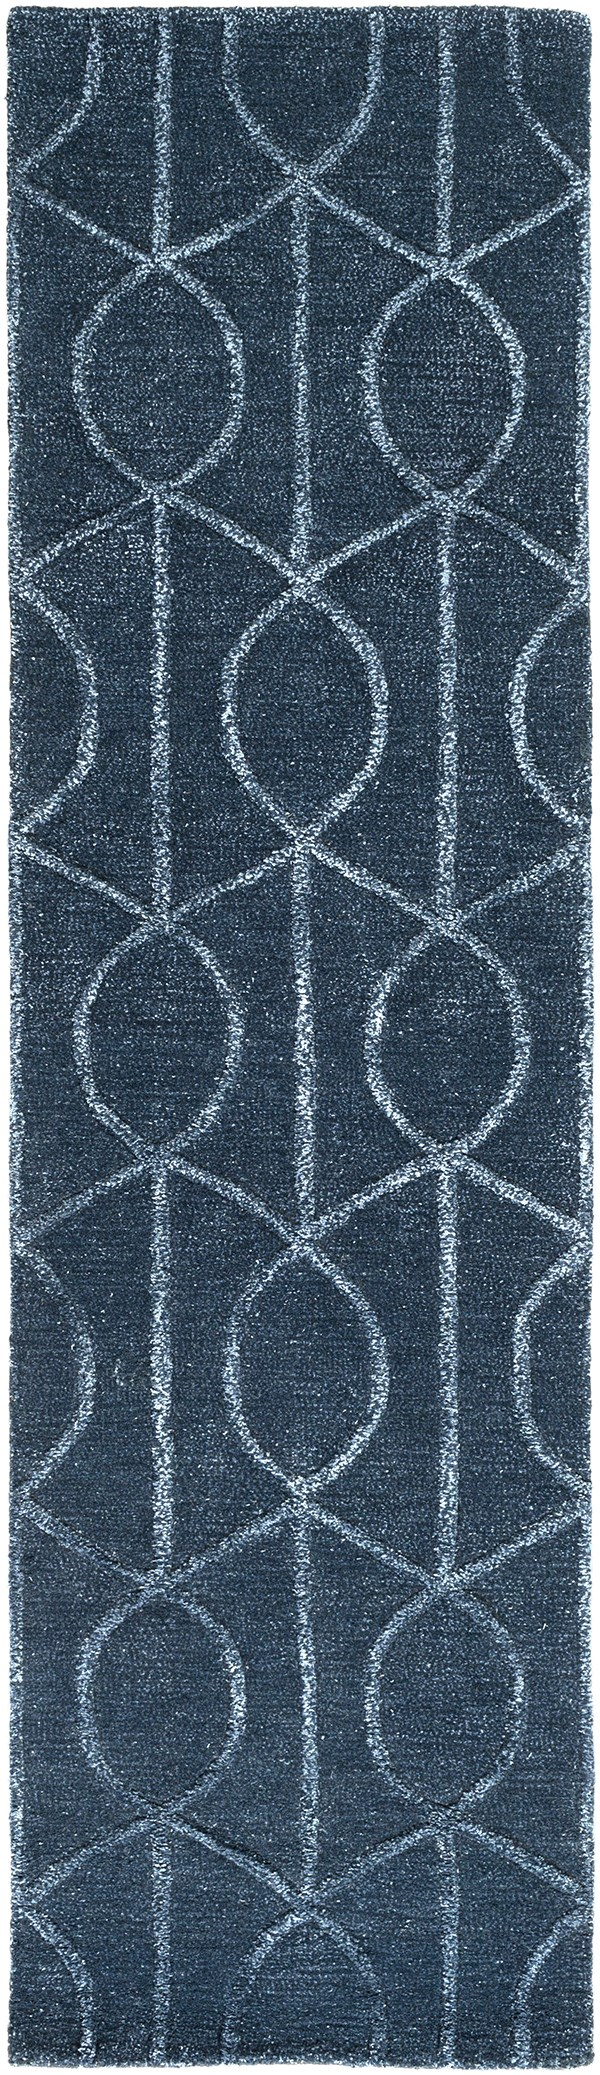 Navy (AWUB-2165) Transitional Area Rug